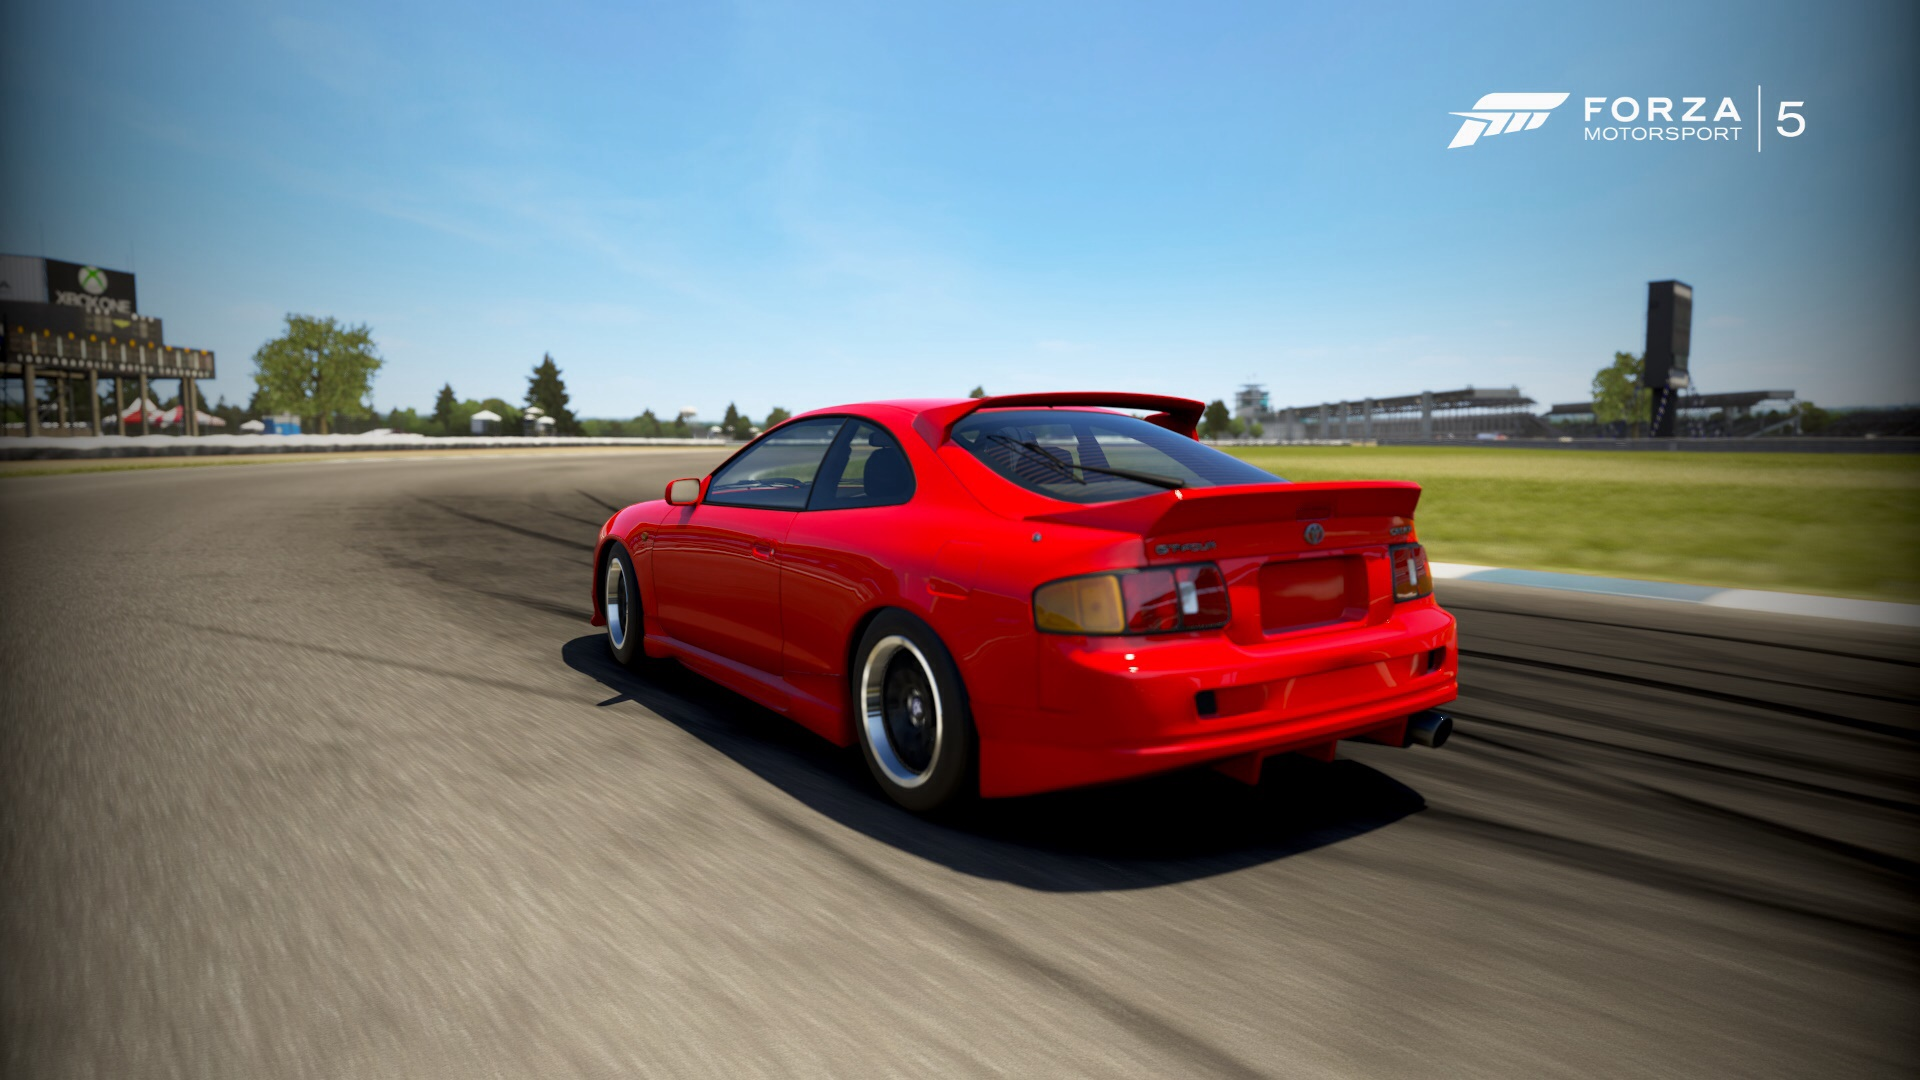 Project Every1 Car Track Sponsored By Rvm If Wir Fti